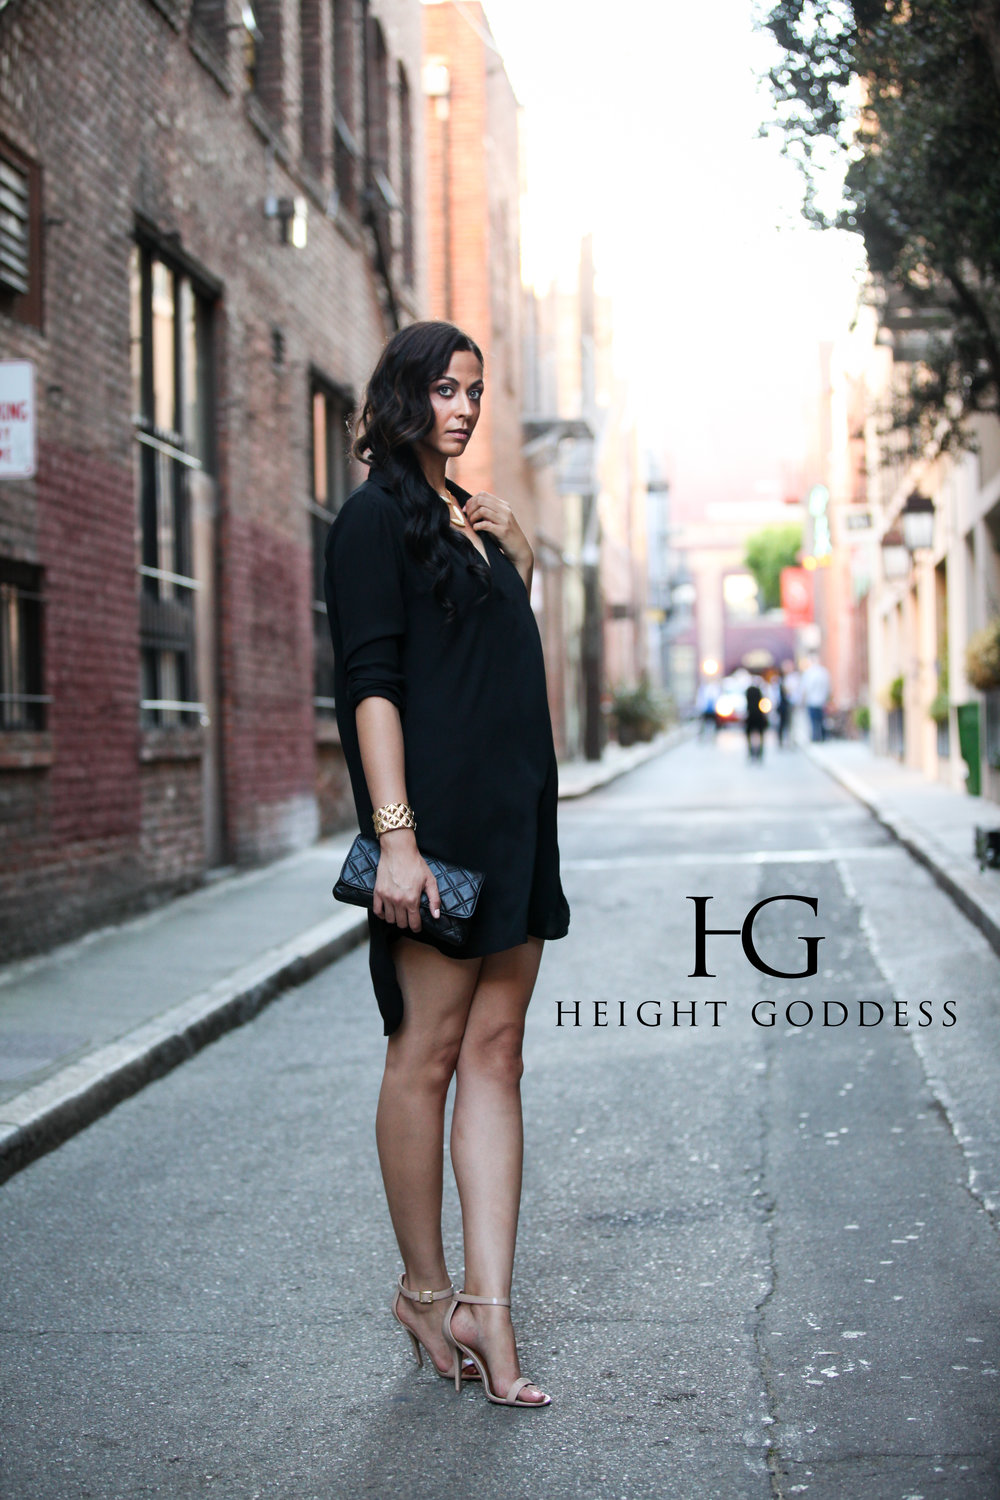 Alicia Jay in HEIGHT GODDESS Black Boyfriend Shirt Dress.jpg